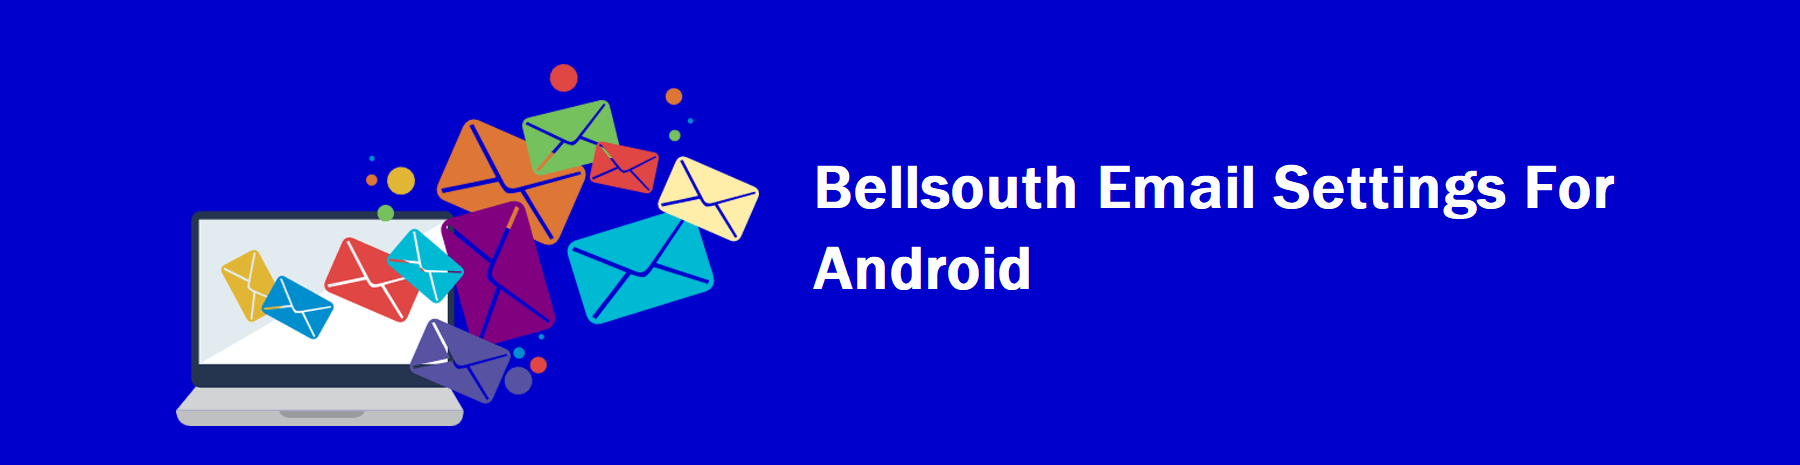 Bellsouth Email Settings For Android